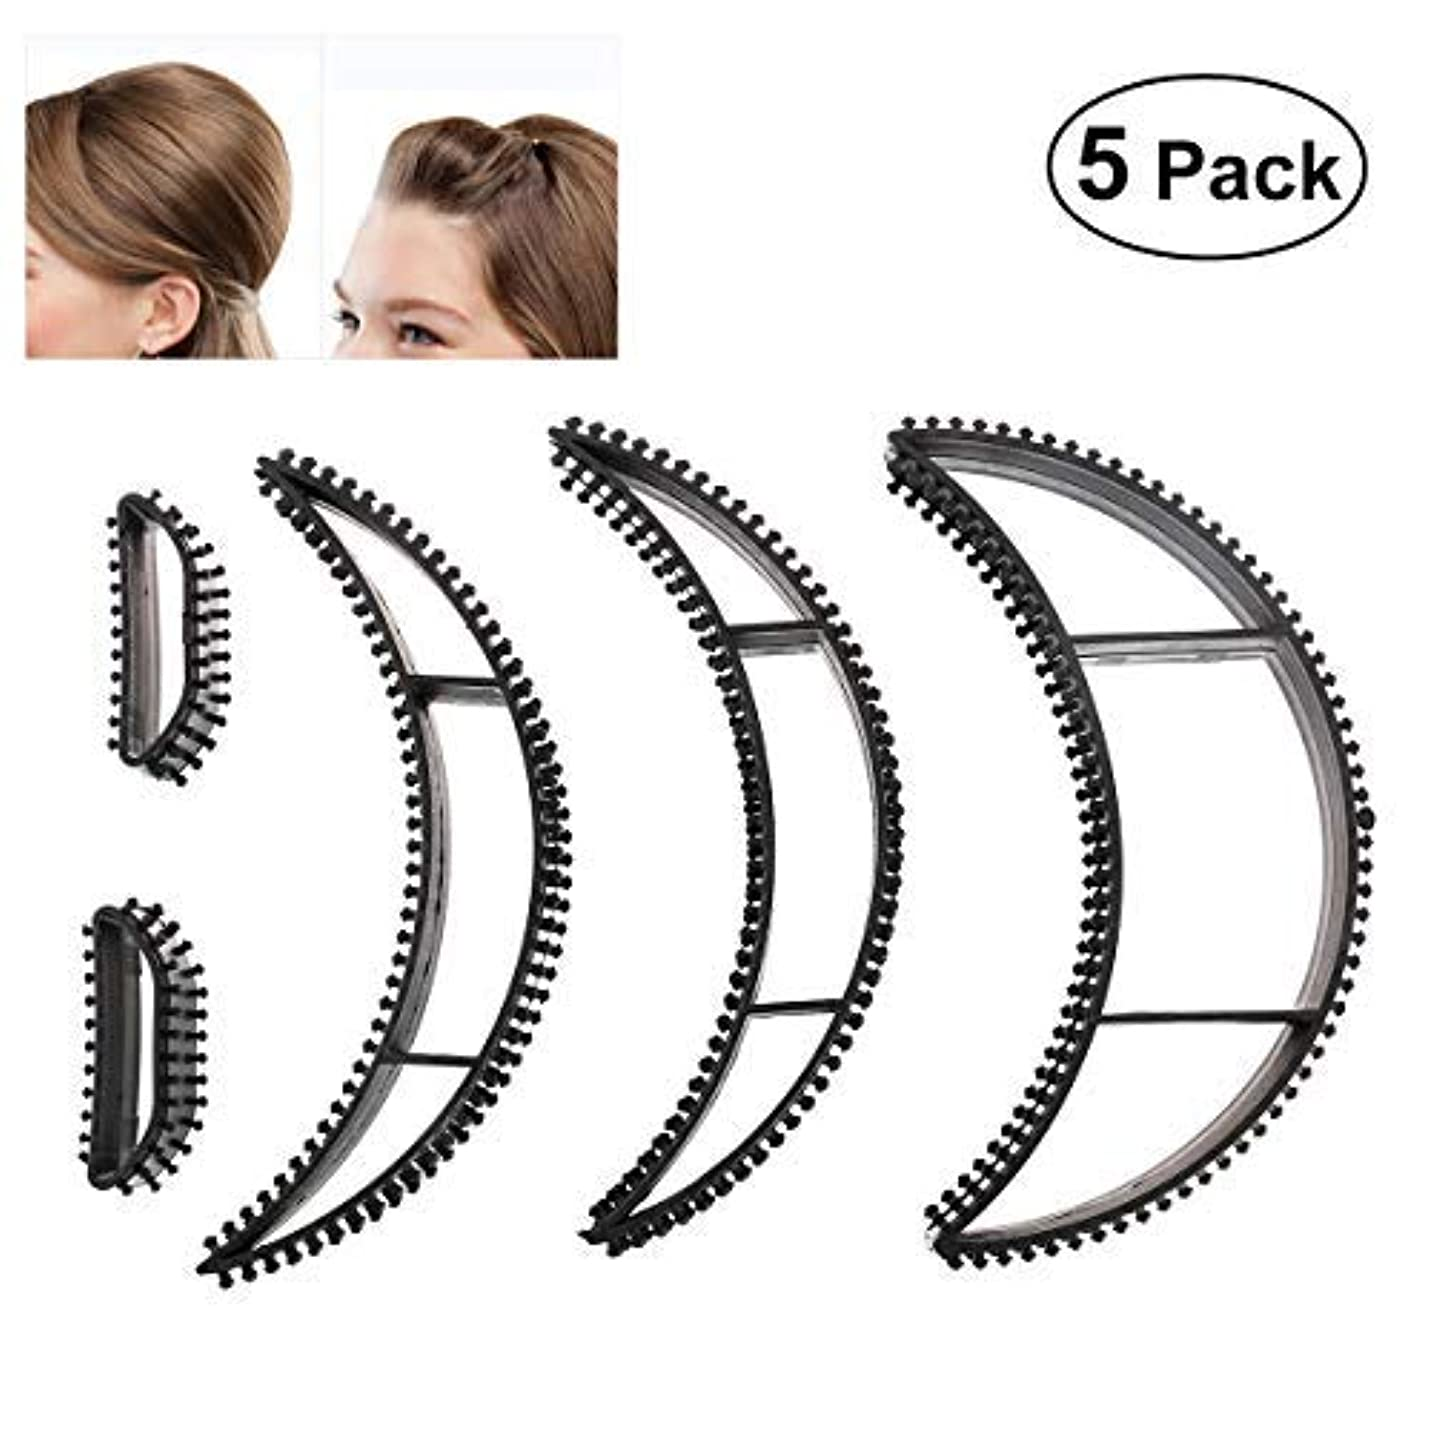 ロバリーチ脱臼するTinksky Big Bumpits Happie Hair Volumizing Inserts Hair Pump Beauty Set Tool Gift,Pack of 5 (Black) [並行輸入品]